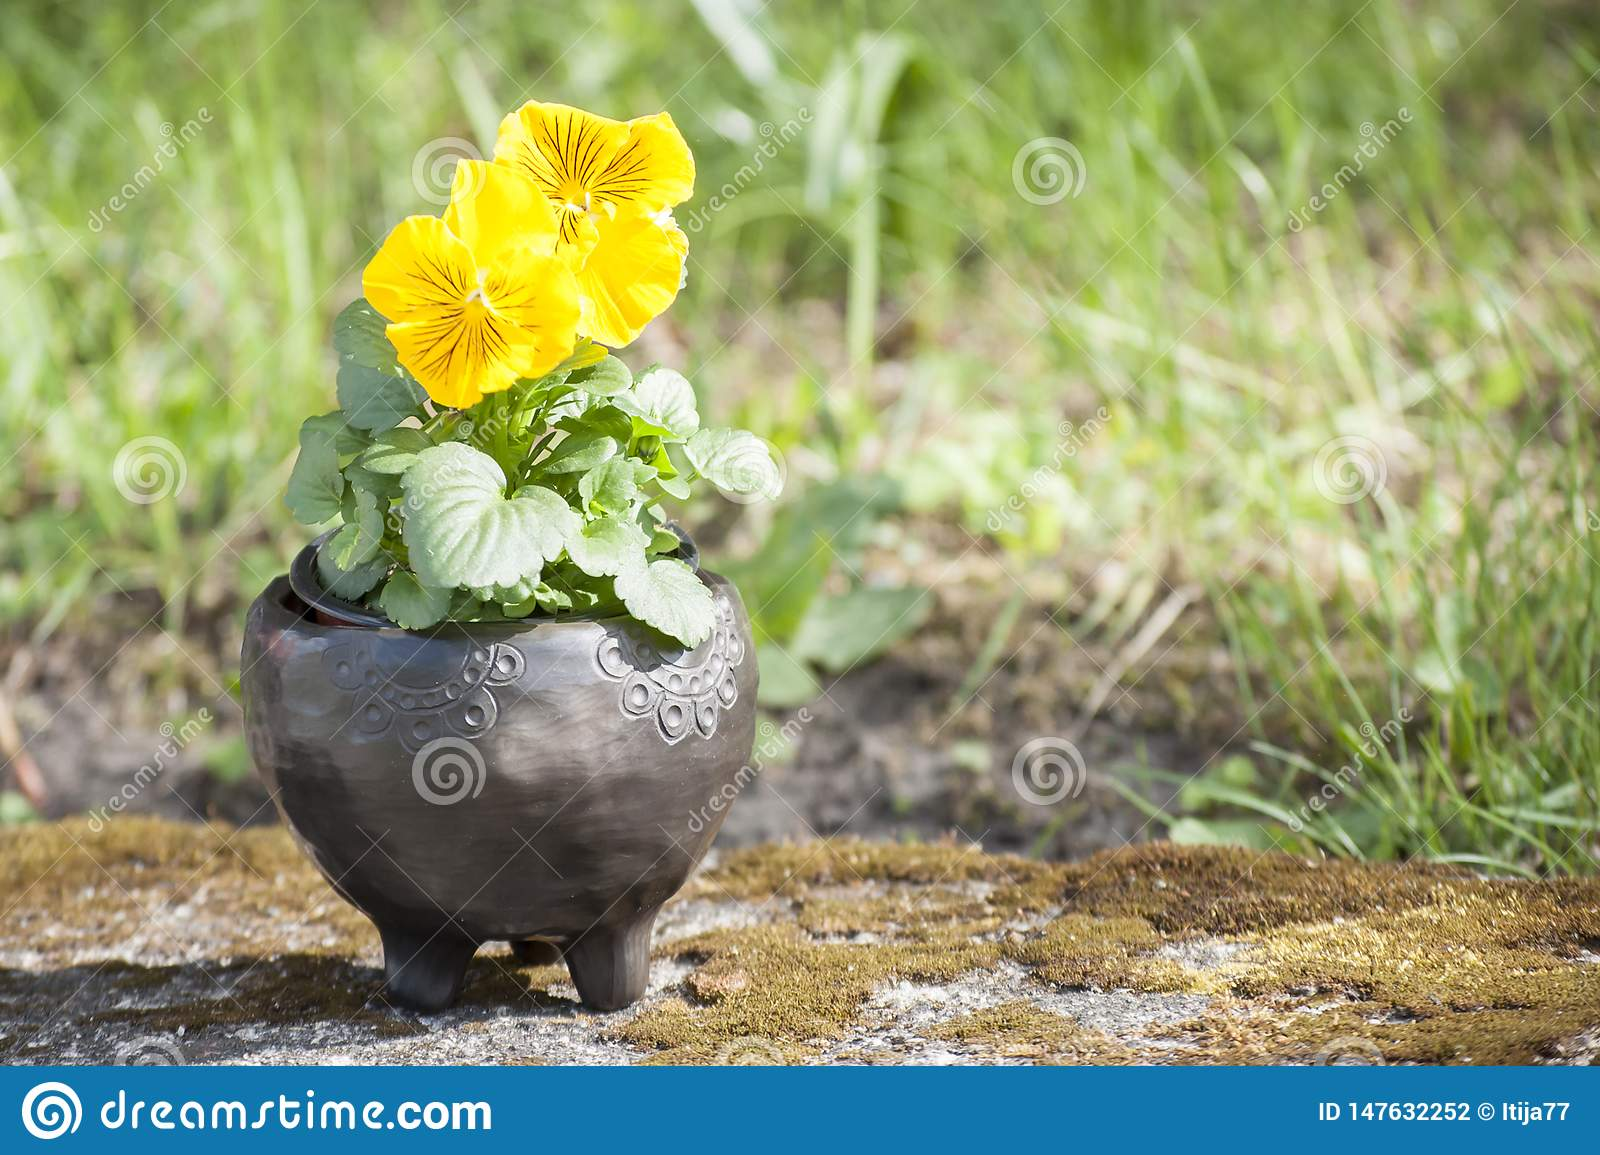 Beautiful Closeup Of Three Unique Planter Of Black Pottery With Yellow Flower In Summer Morning Sunlight Stock Photo Image Of Fire Green 147632252